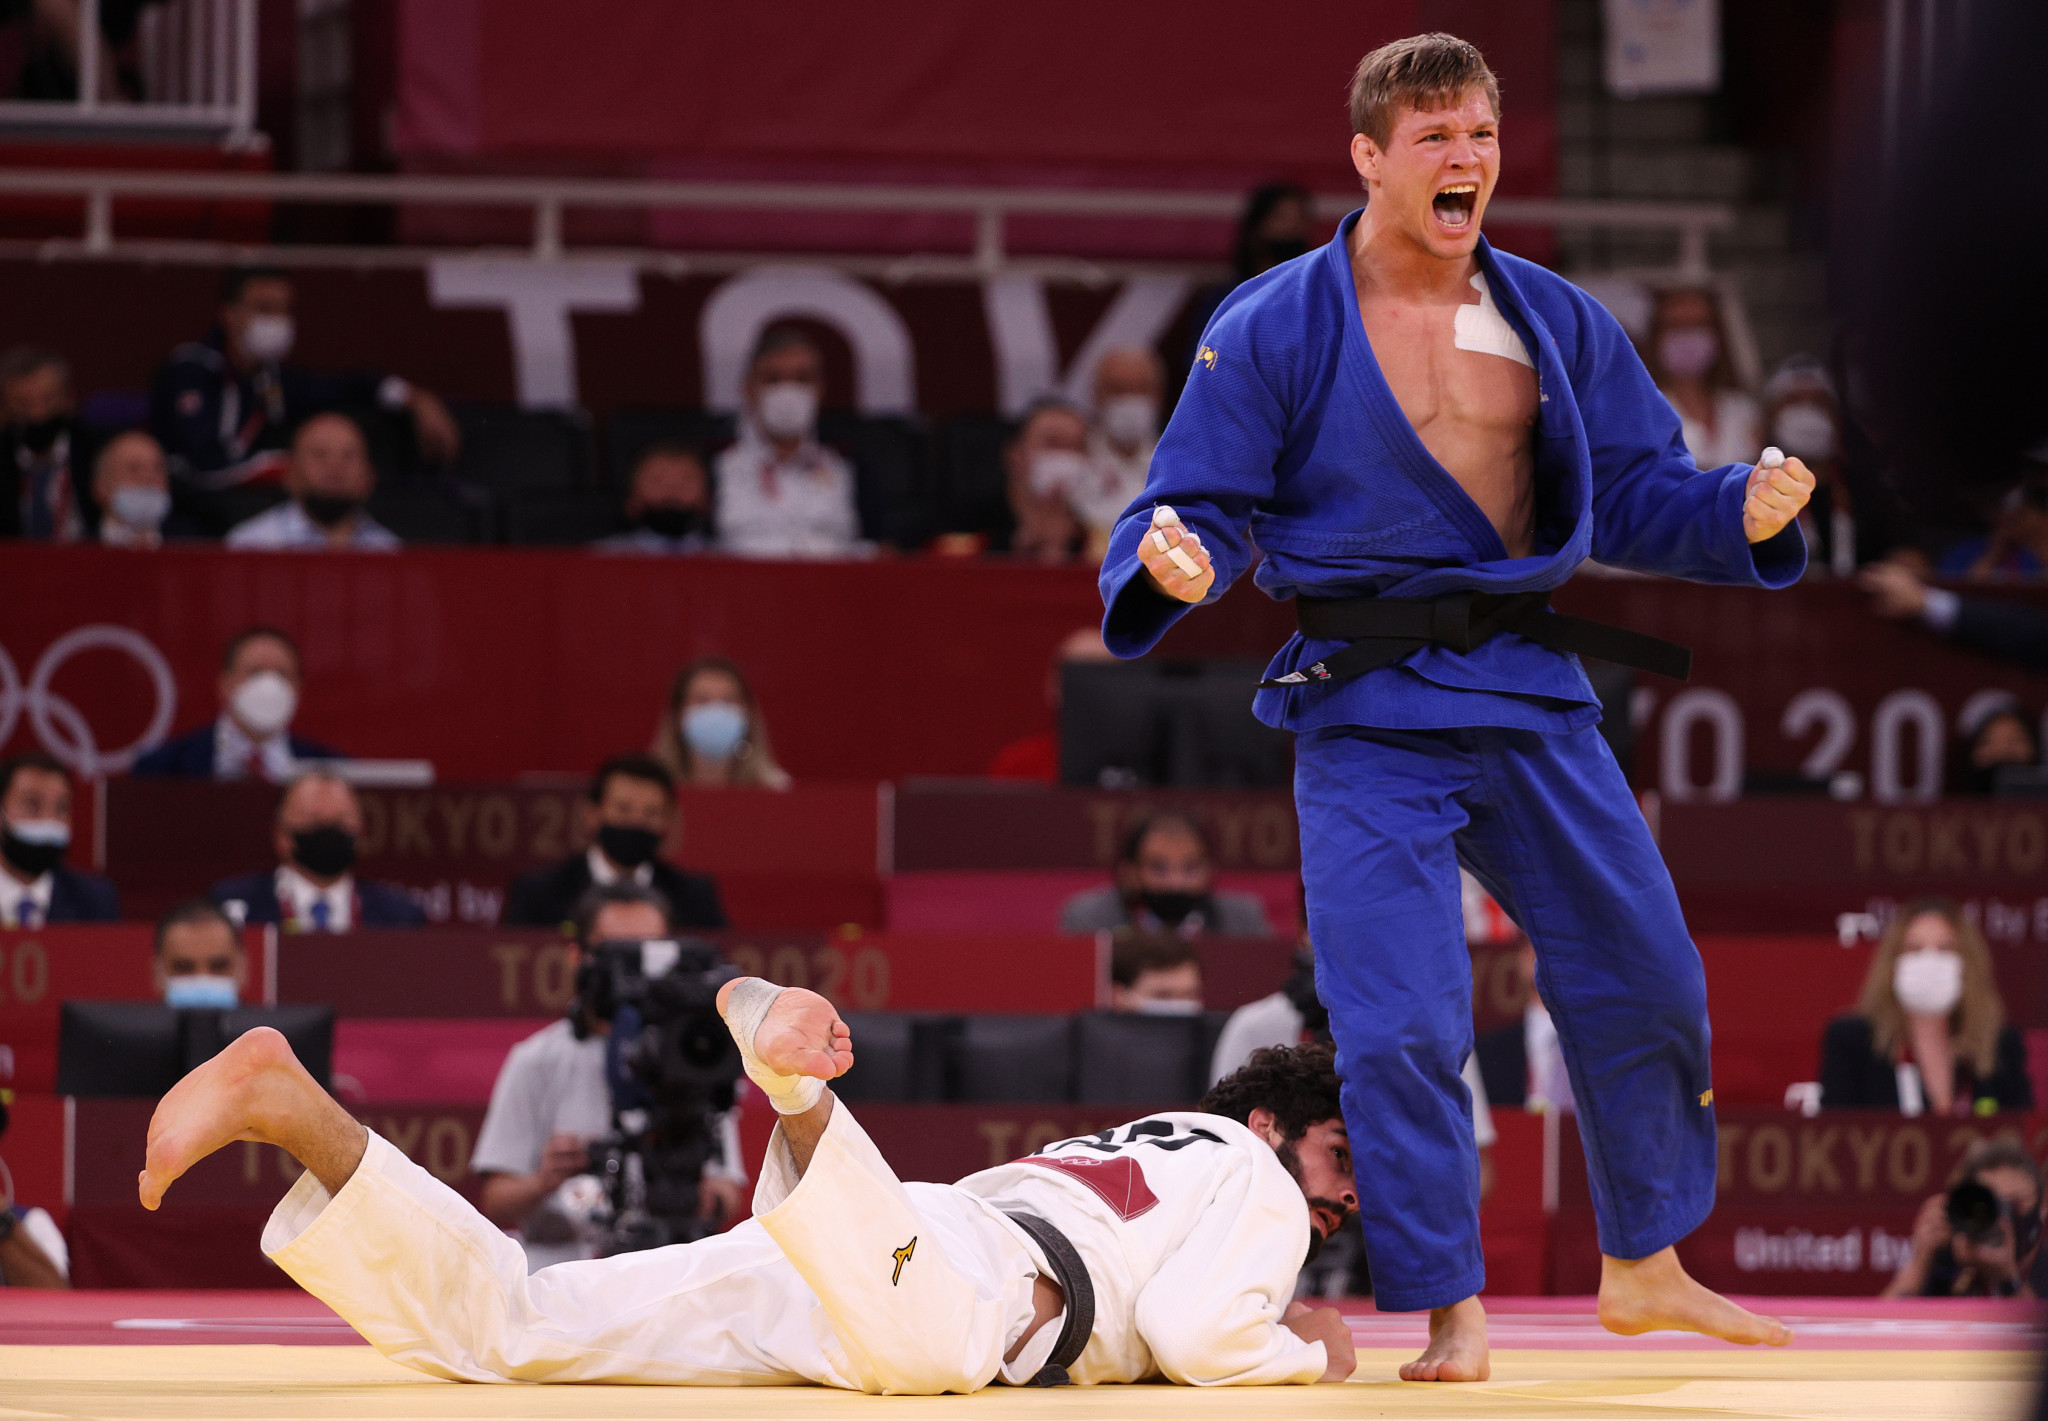 World number one Matthias Casse beat Tato Grigalashvili to win the bronze medal in the men's under-81kg category ©Getty Images